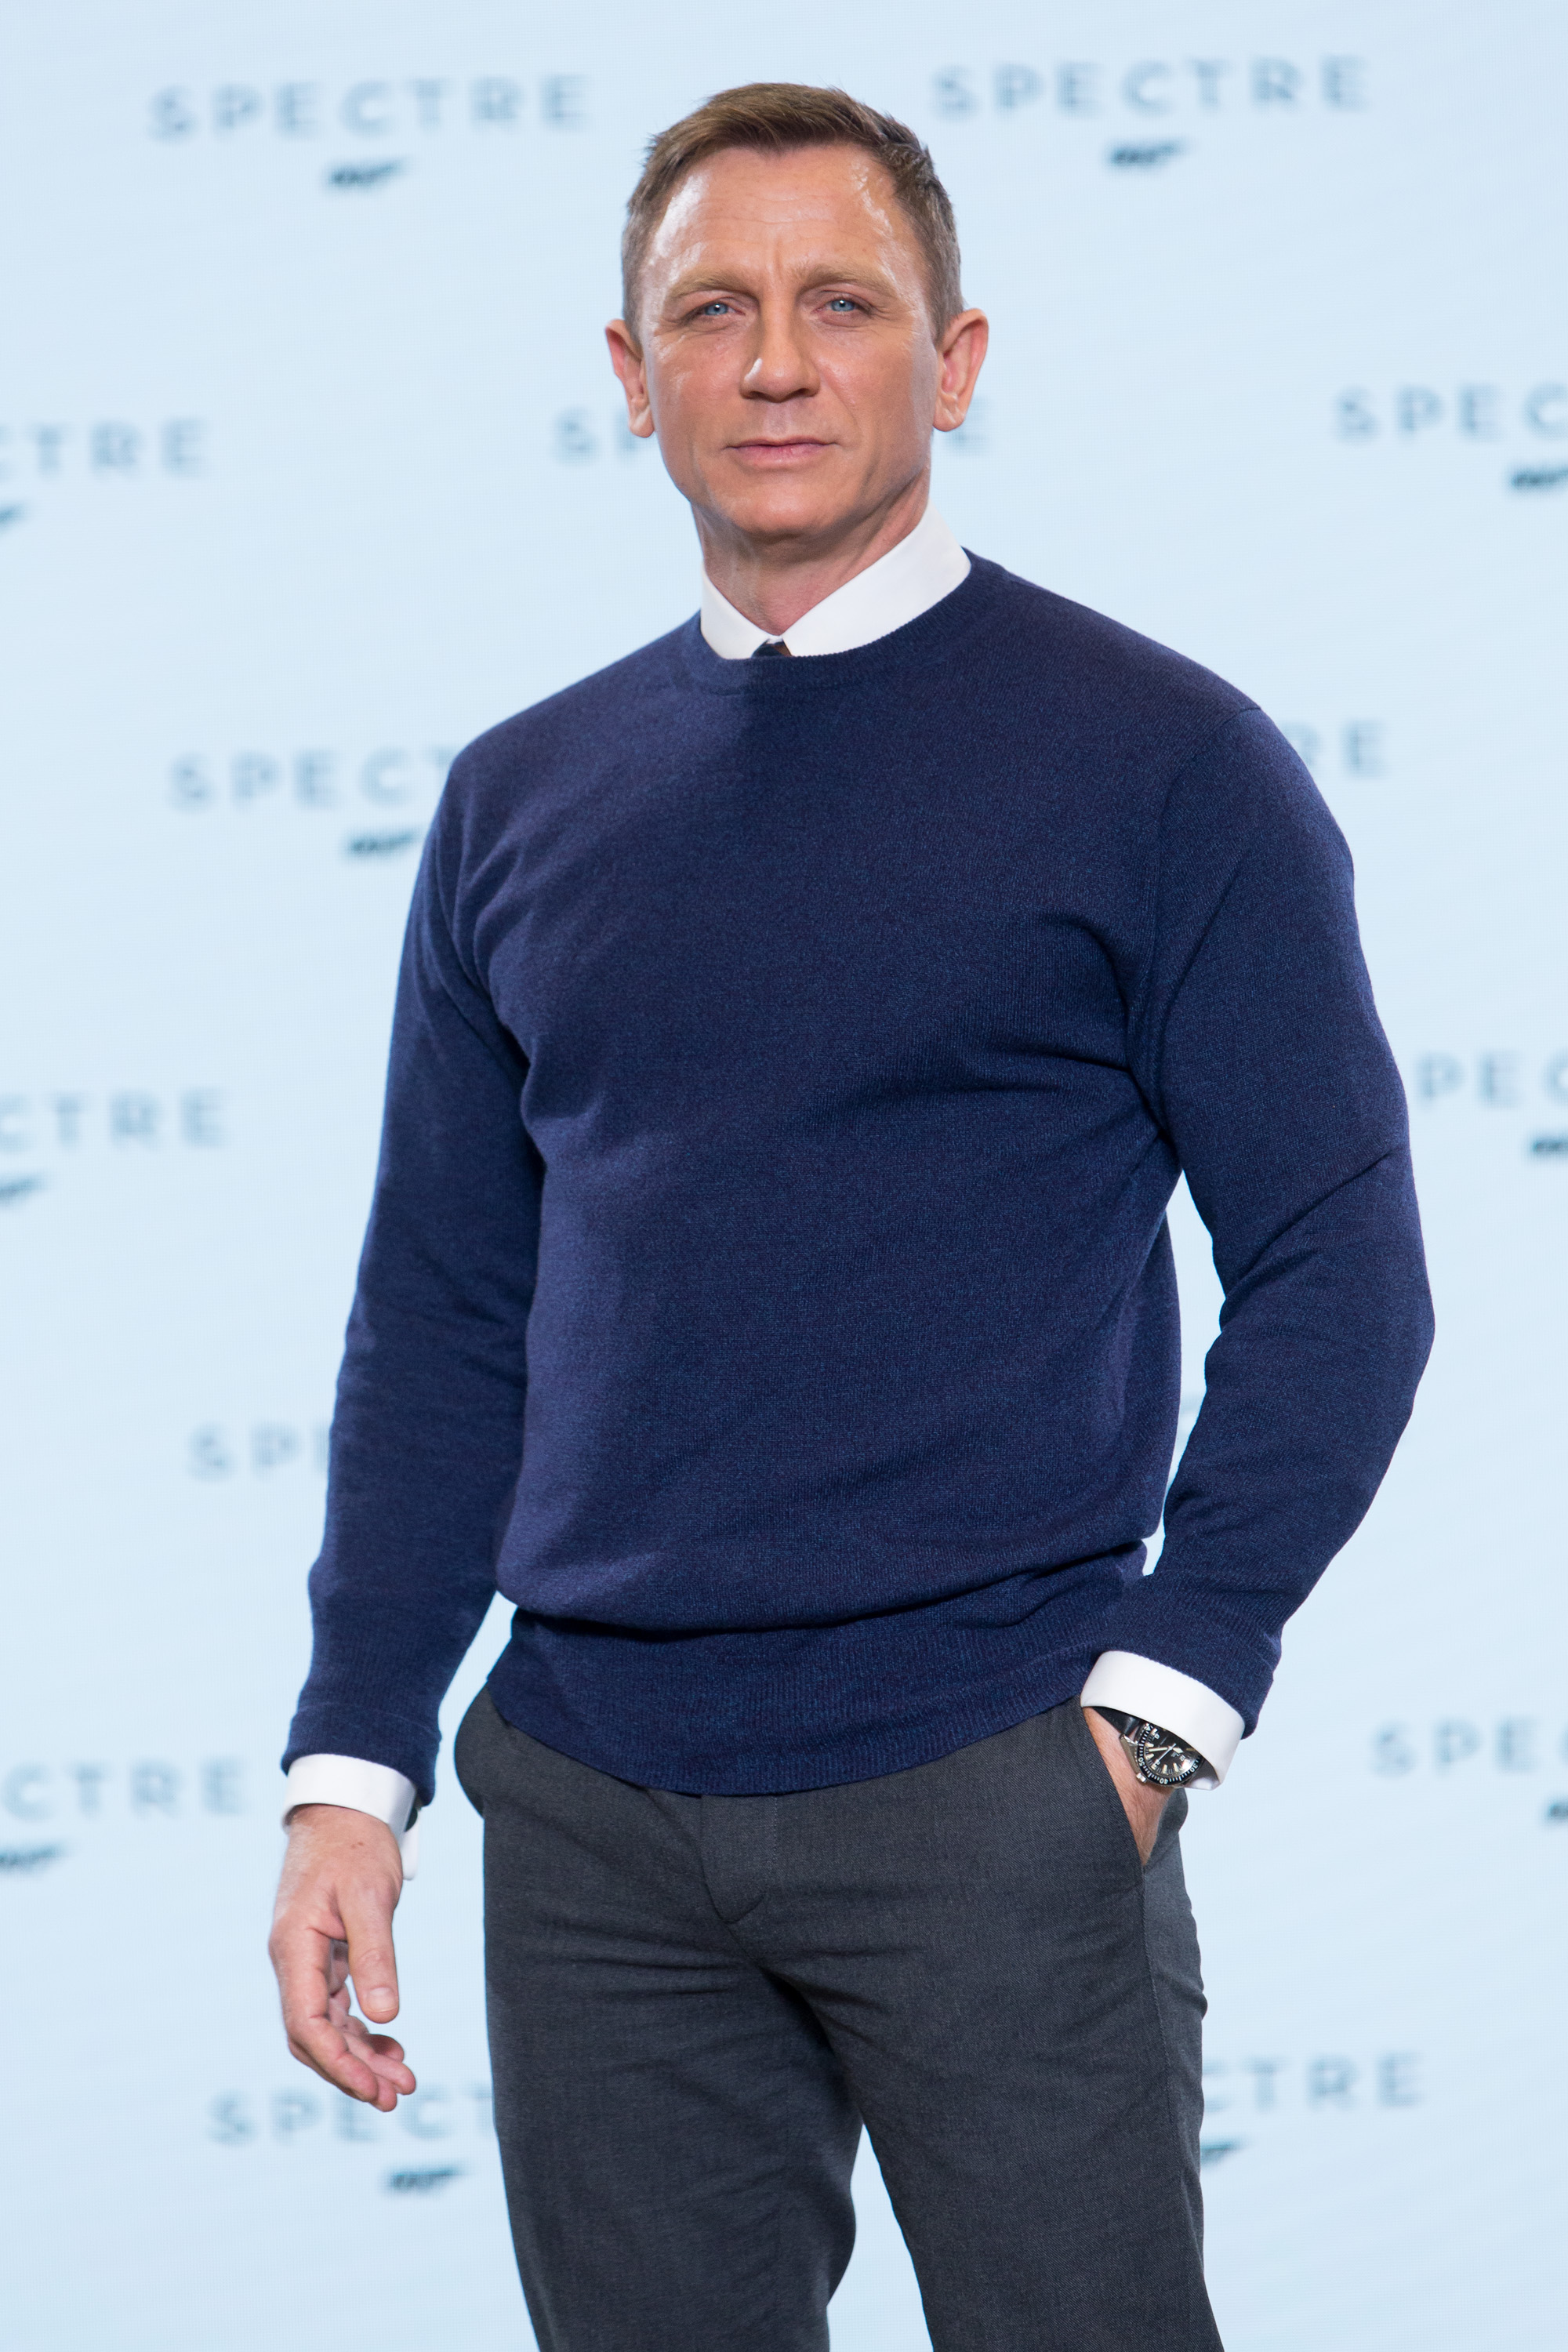 Daniel Craig | James Bond Wiki | Fandom